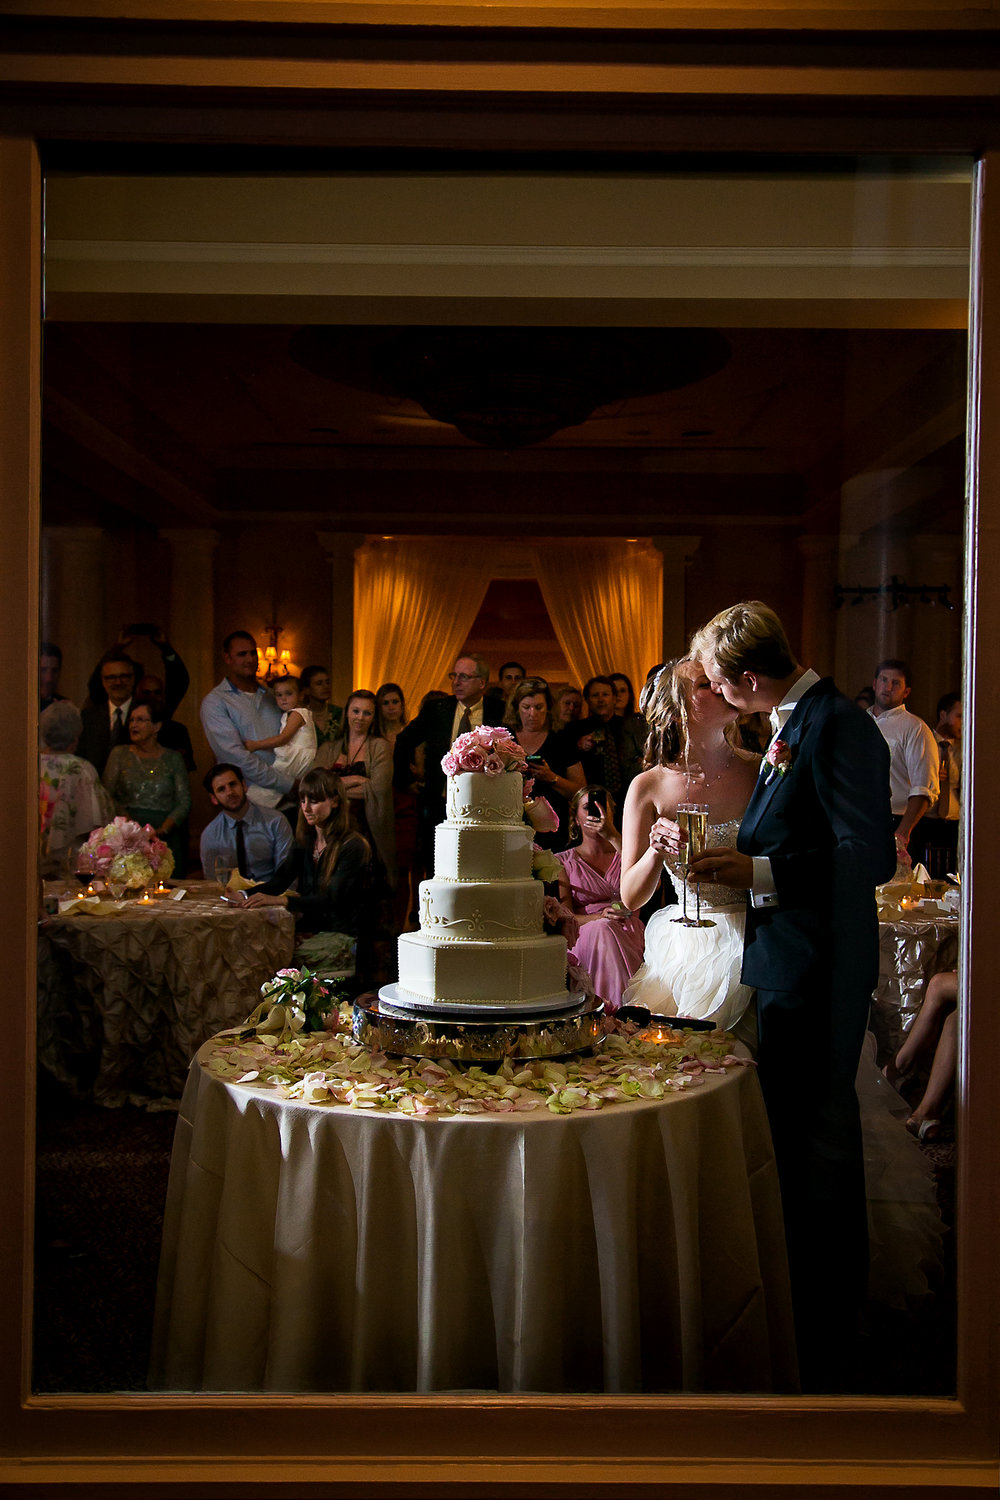 los angeles wedding photographer_ candid_ natural wedding photos_236.JPG